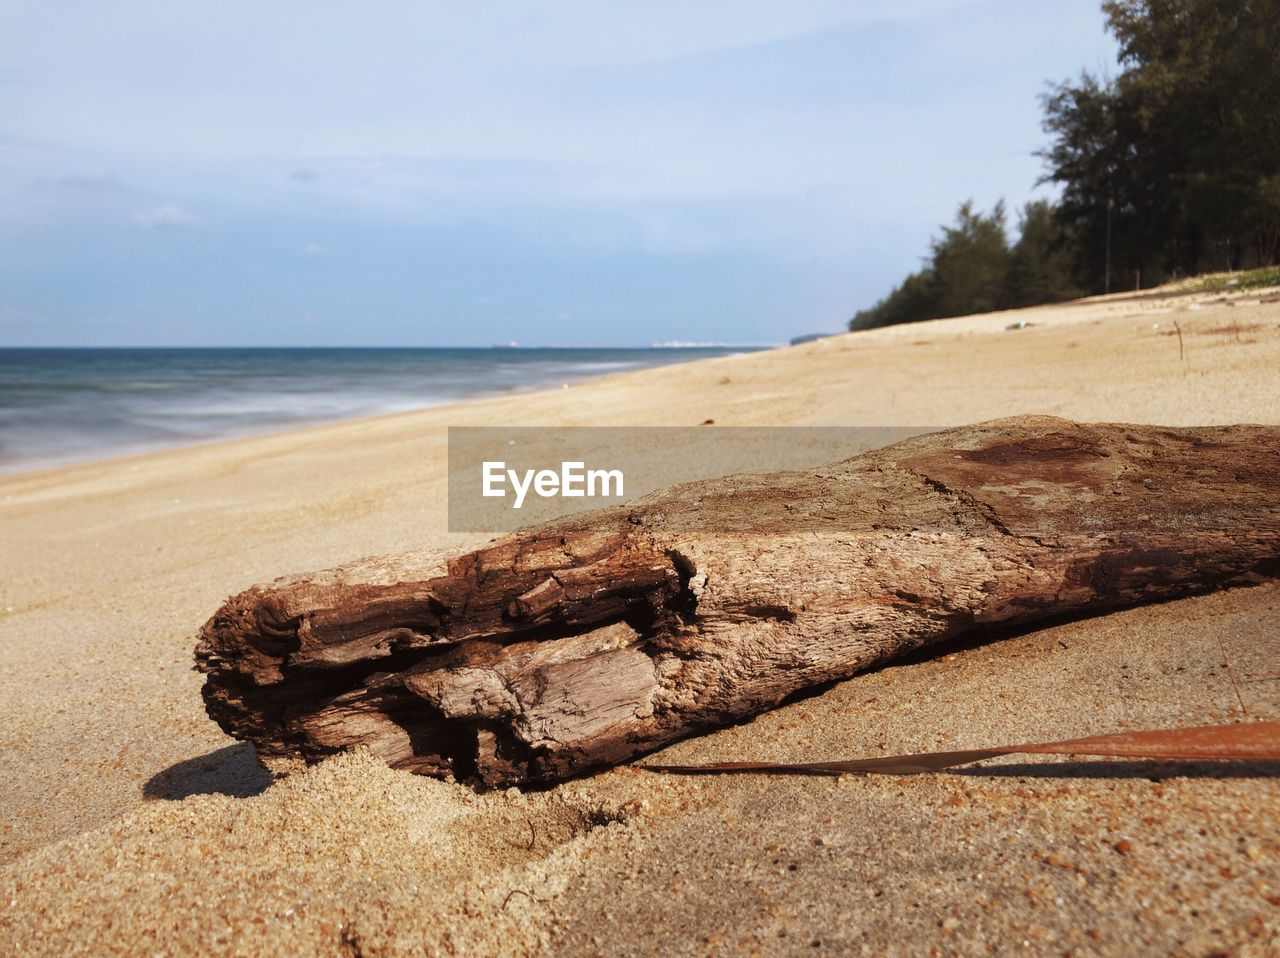 sea, water, sky, beach, land, nature, scenics - nature, horizon over water, day, tranquil scene, tranquility, no people, horizon, beauty in nature, focus on foreground, sand, rock, outdoors, tree, driftwood, wood